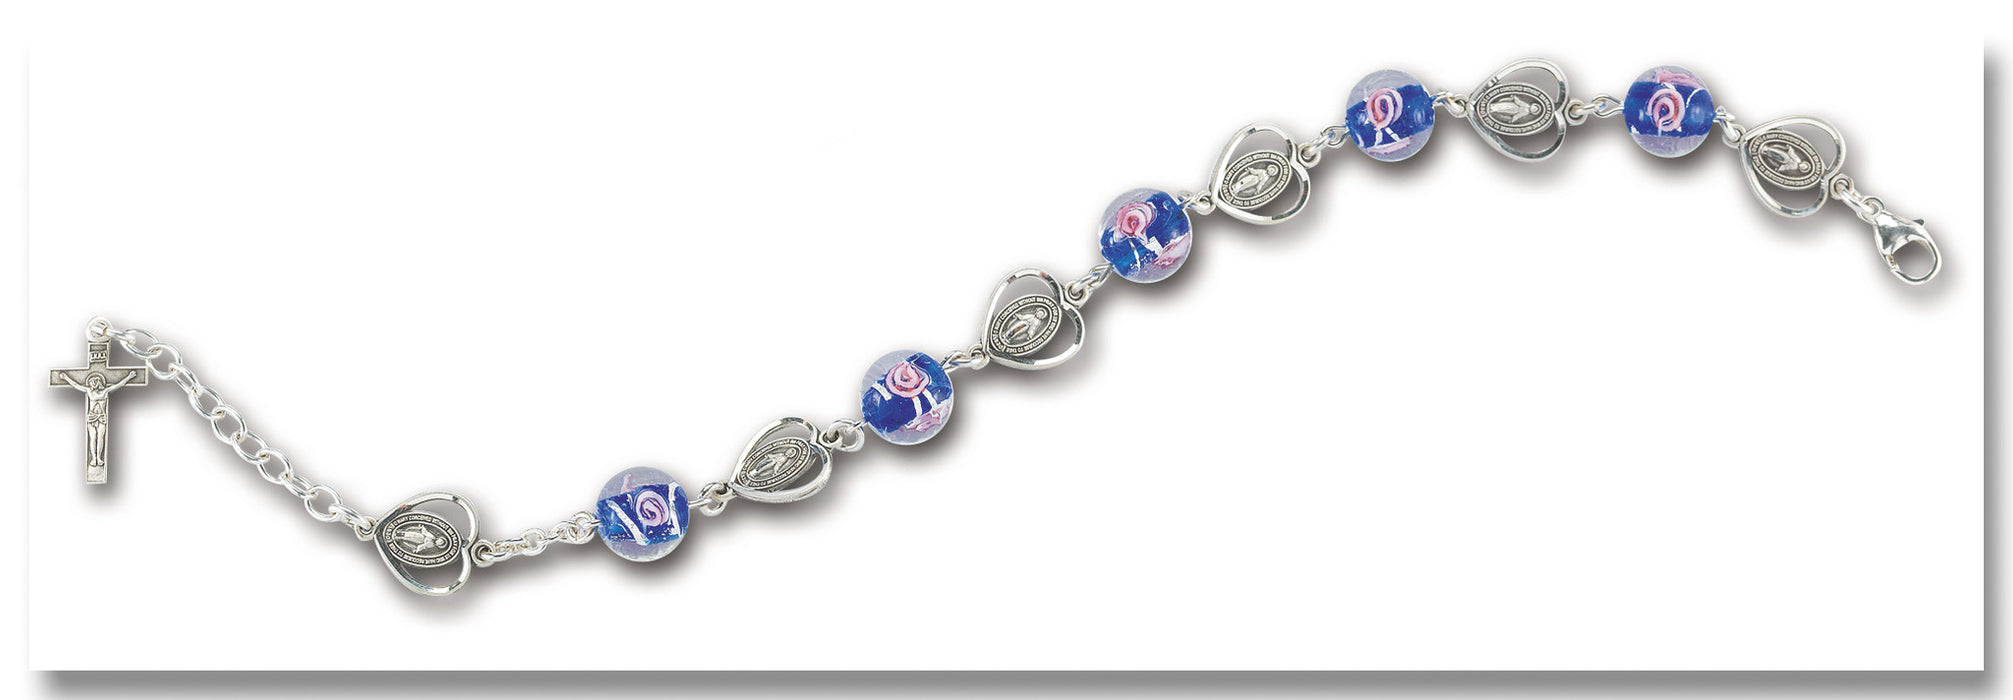 10mm Blue Venetian Bead & Miraculous Heart Bracelet